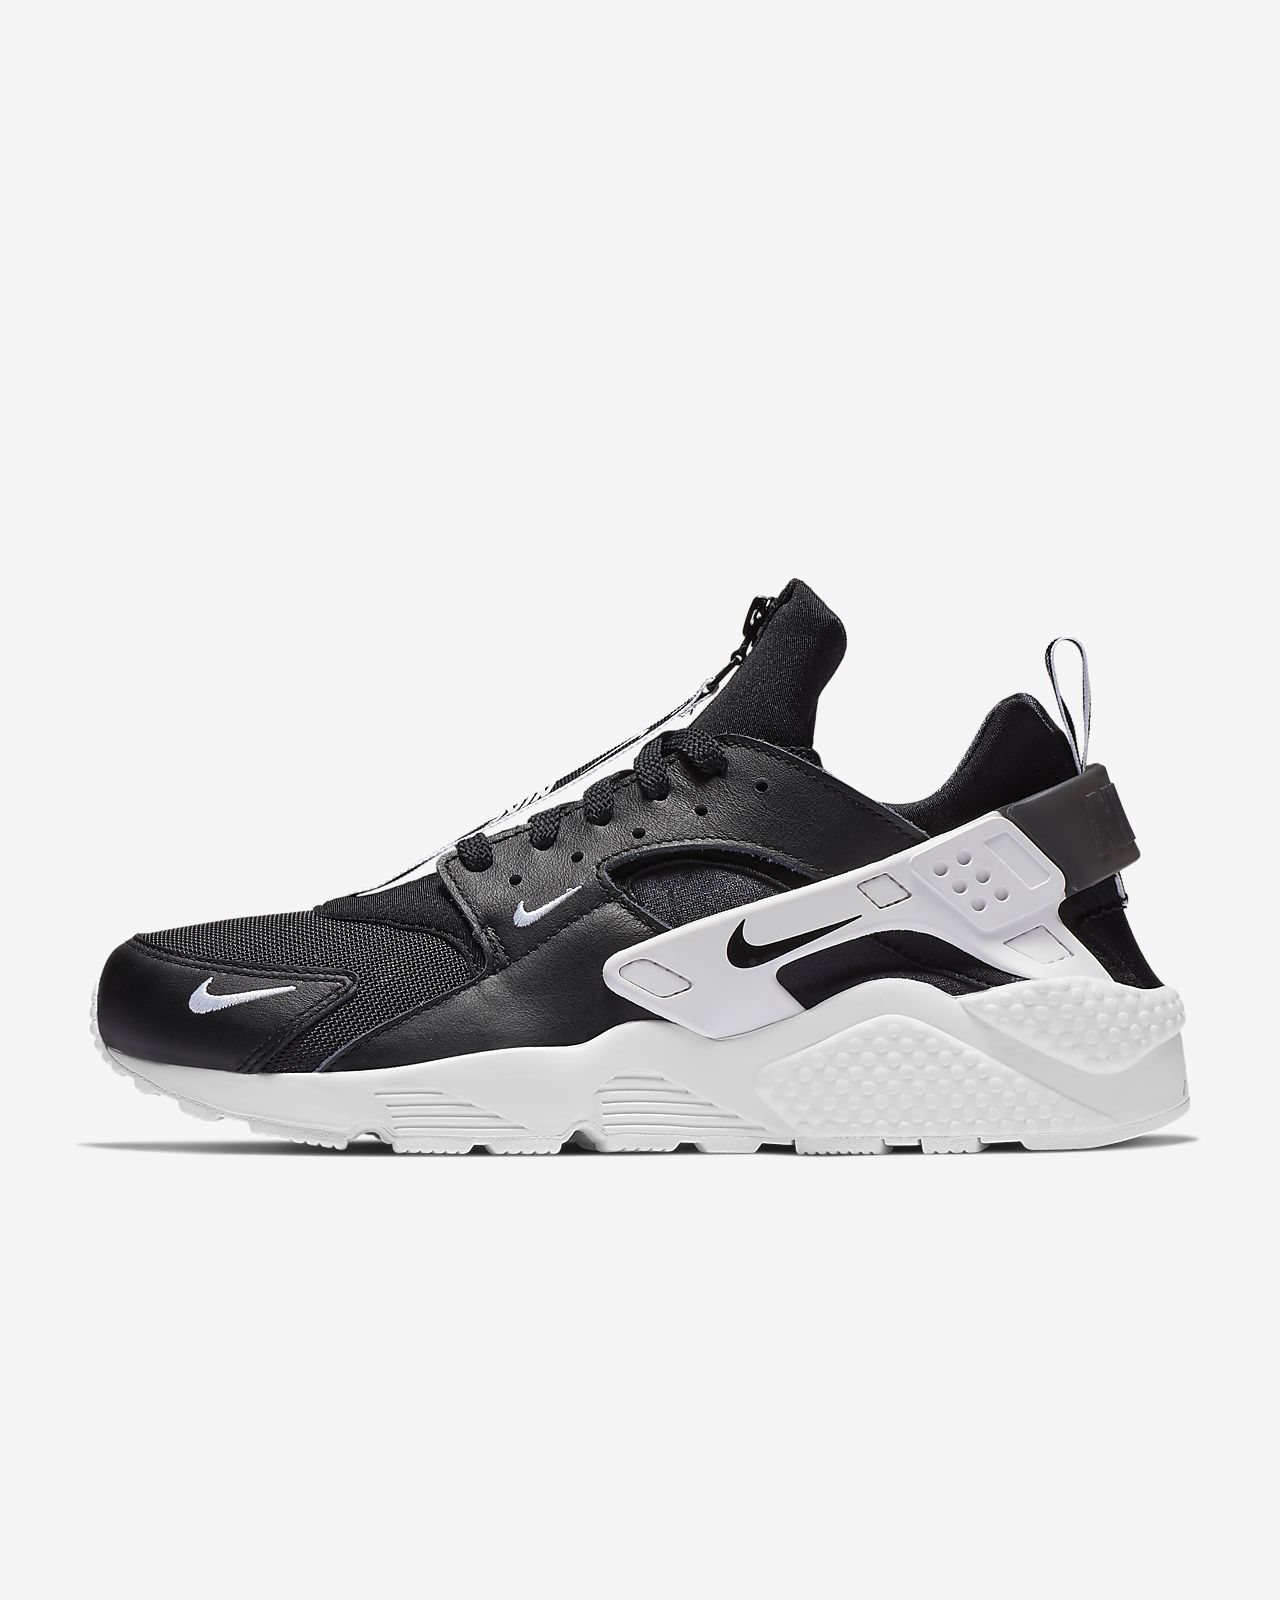 86a73295c9d467 Nike Air Huarache Run Premium Zip Men s Shoe. Nike.com ID